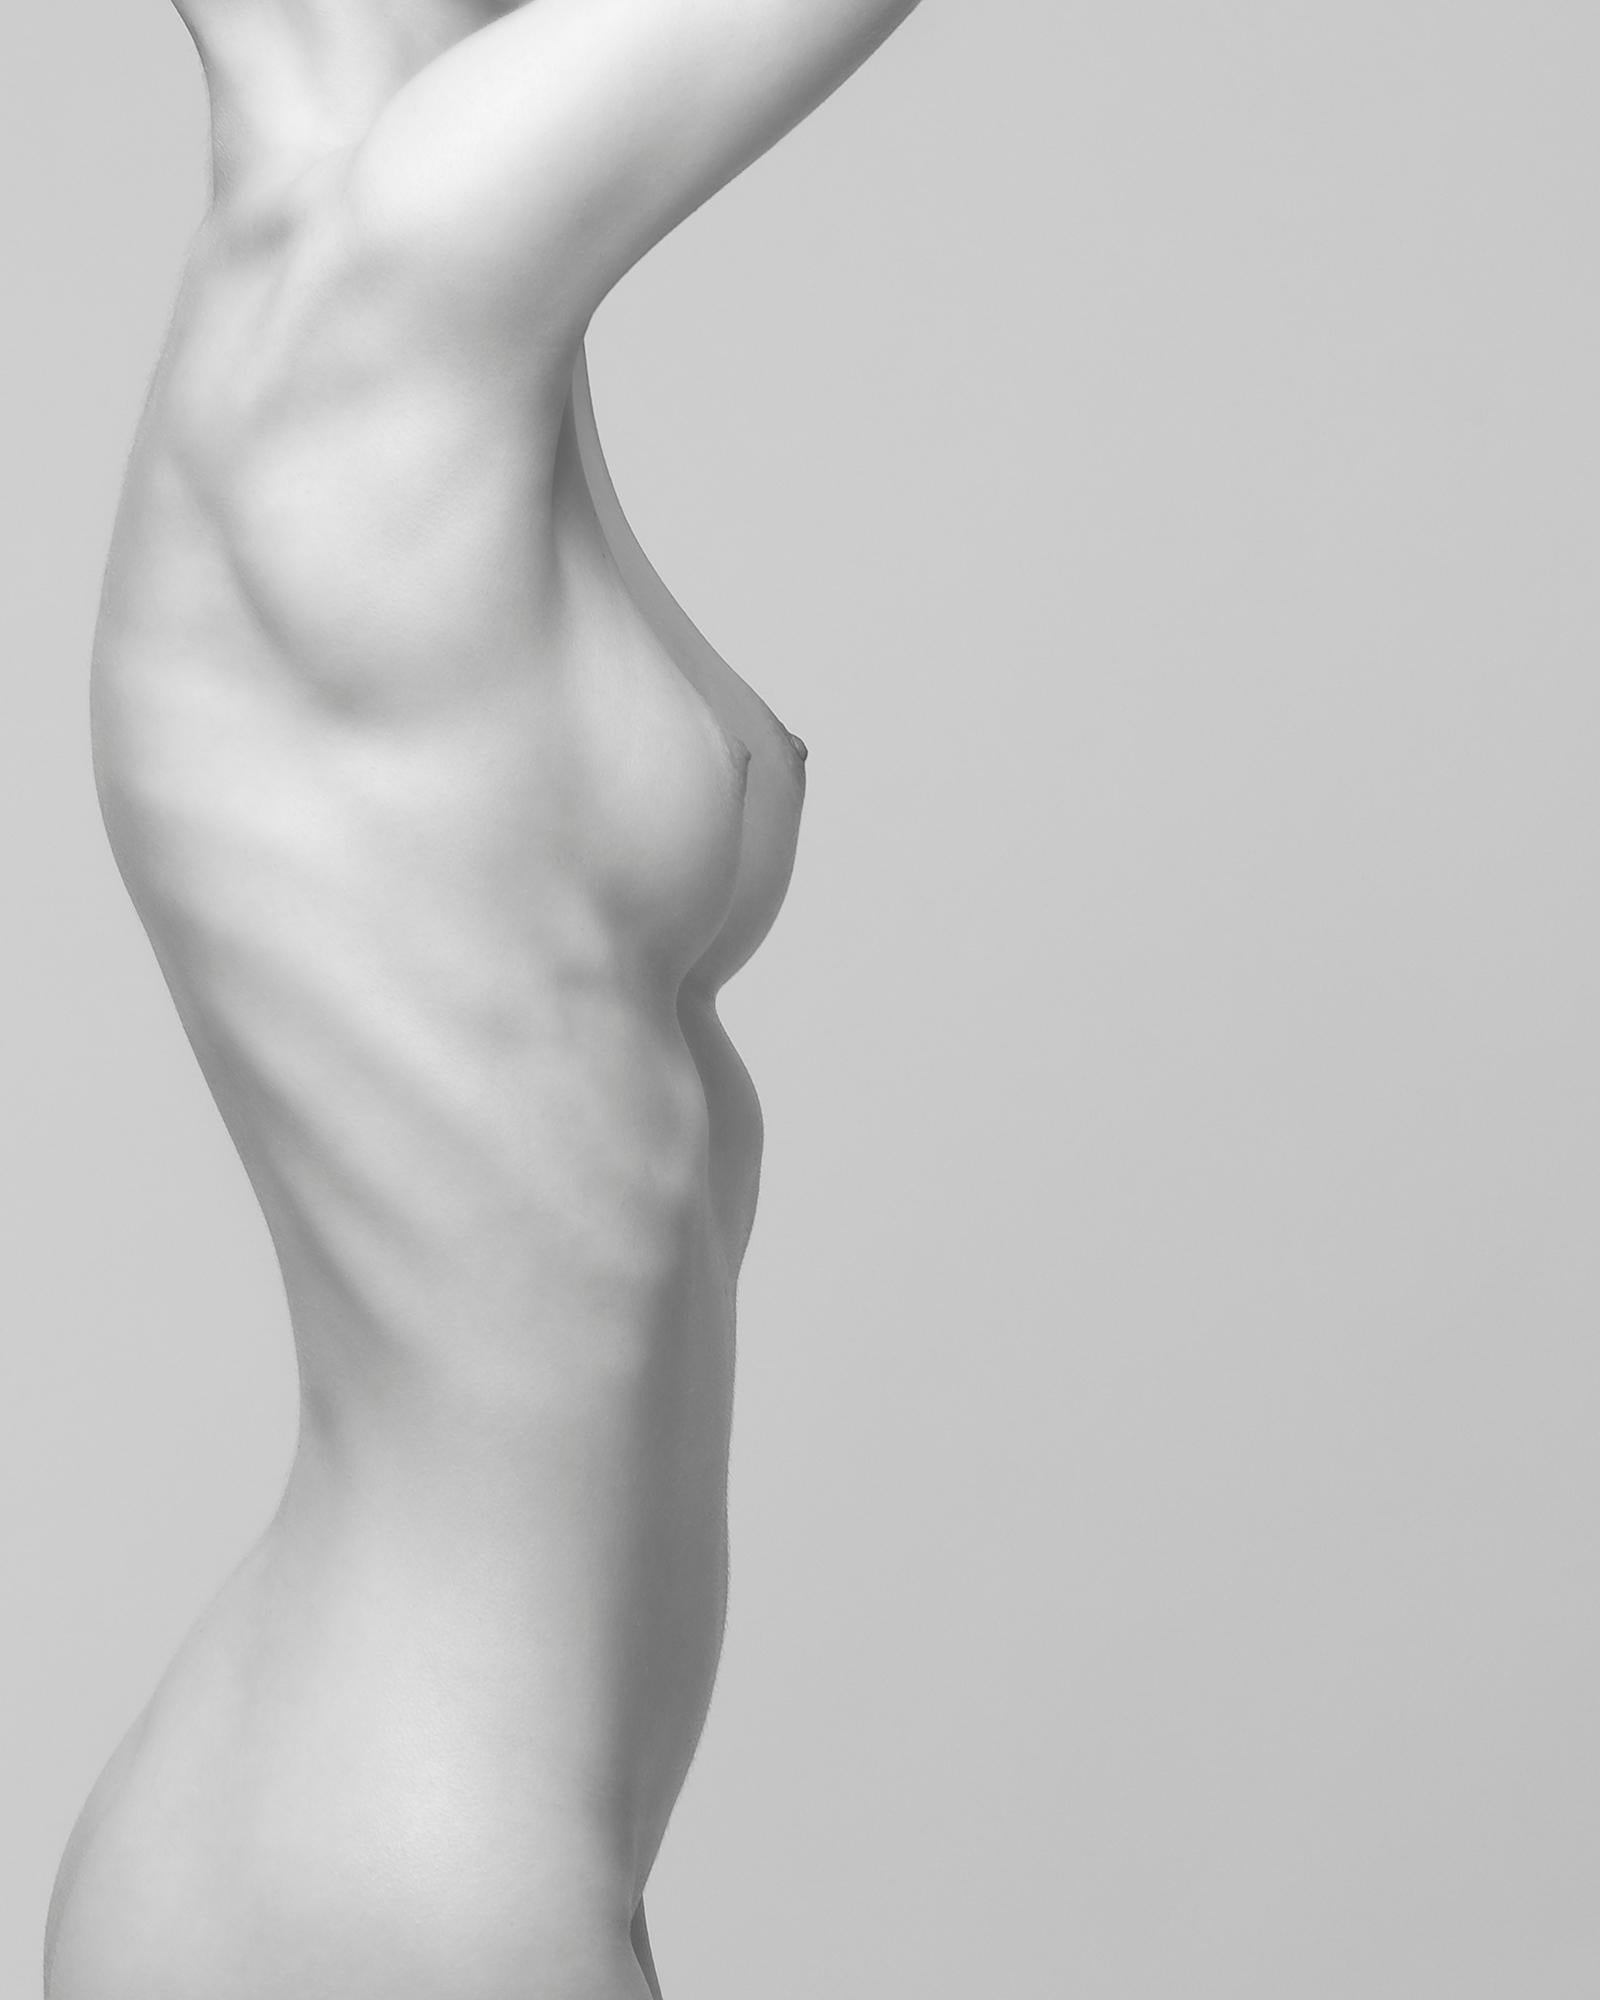 Side View, 21st century, contemporary, photography